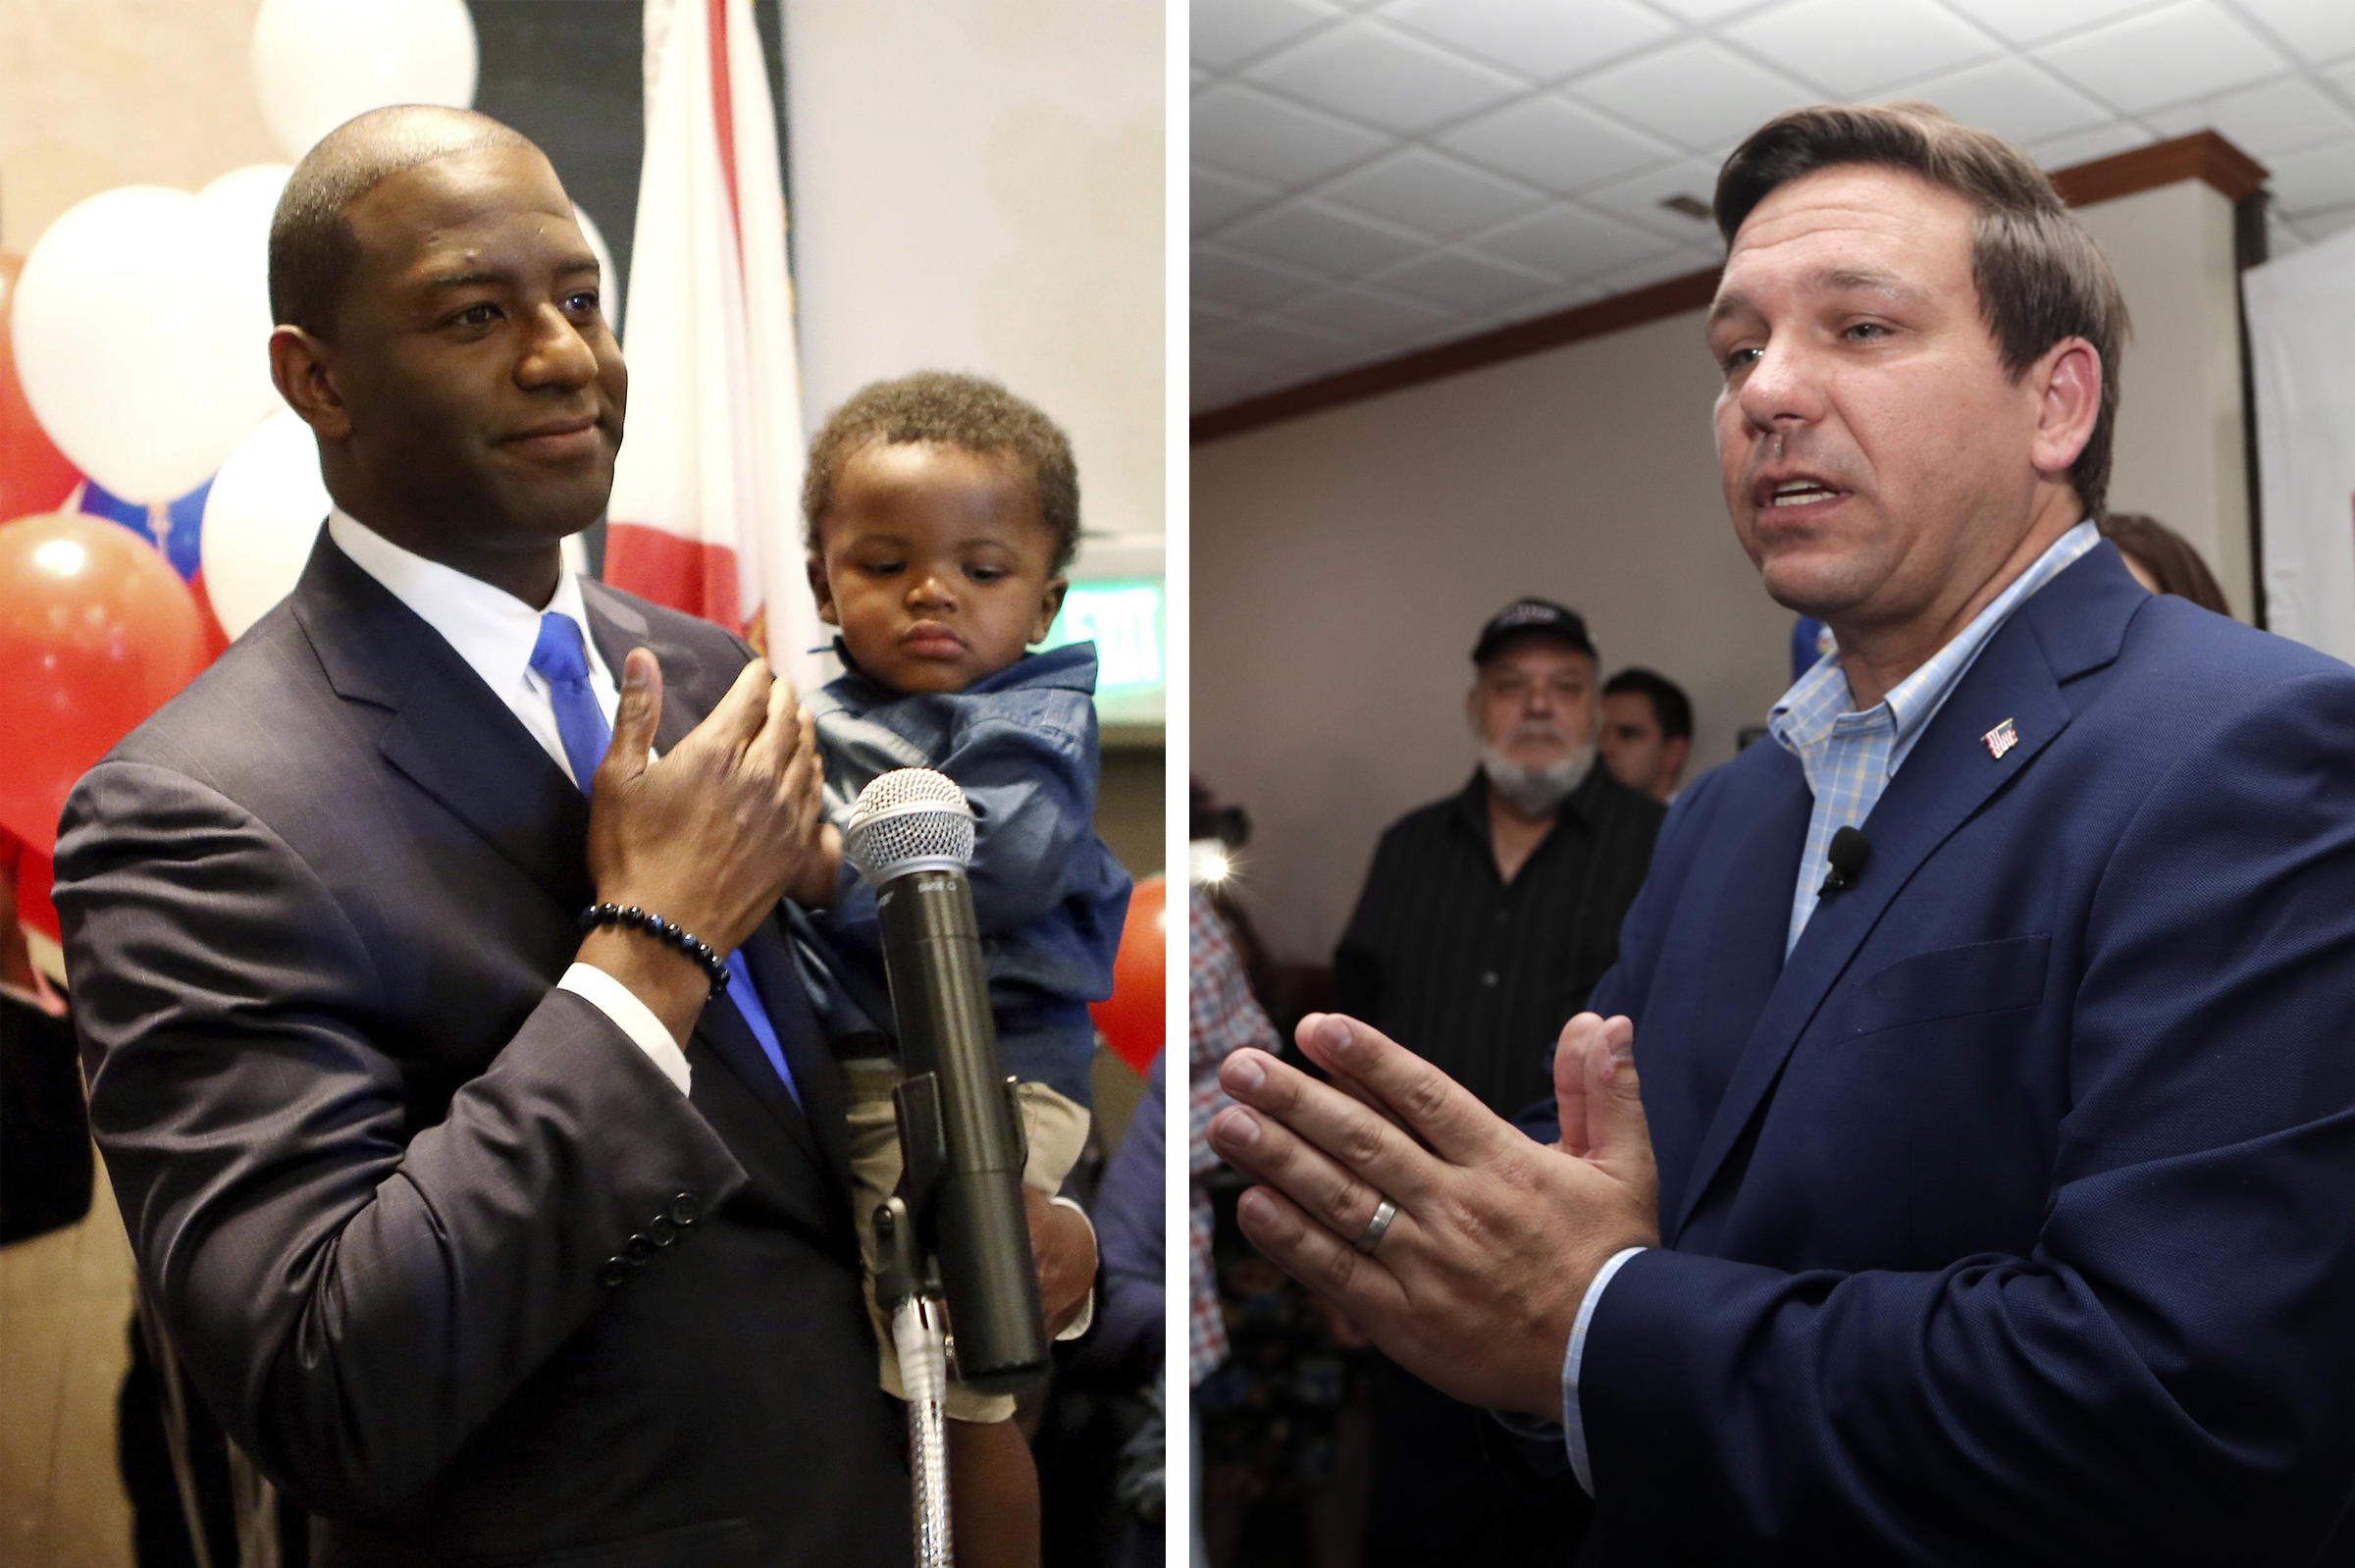 DeSantis unfazed after liberal outrage mob claims his 'monkey' remark is racist